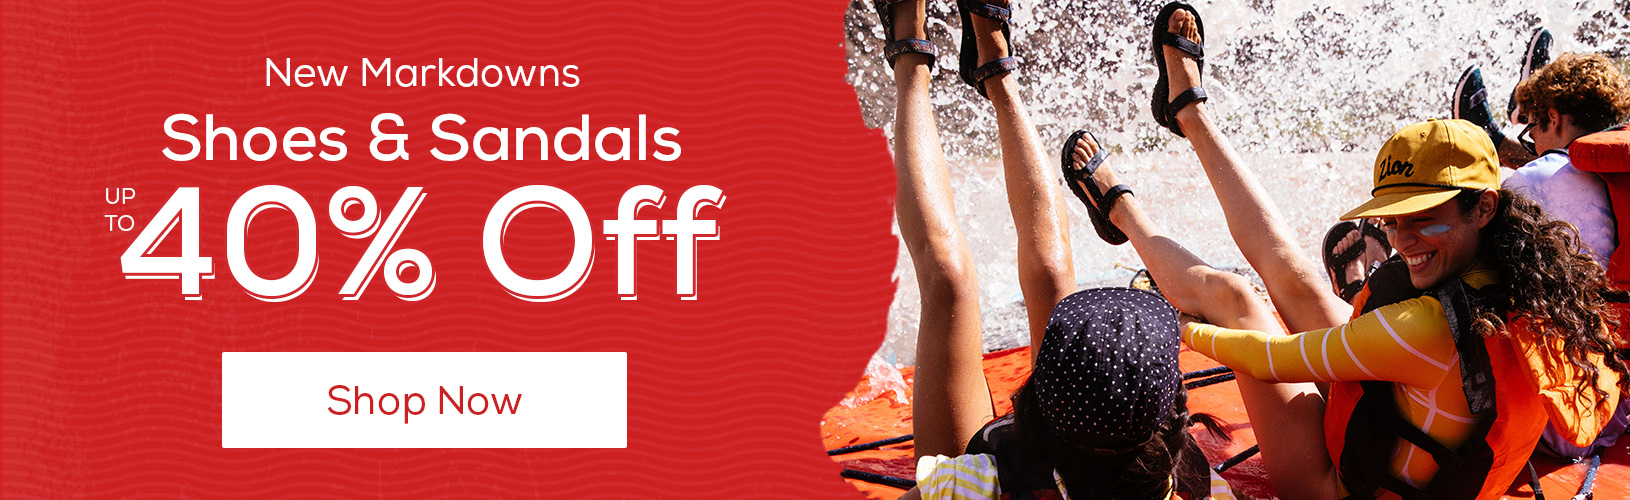 New Markdowns. Shoes & Sandals Up to 40% Off